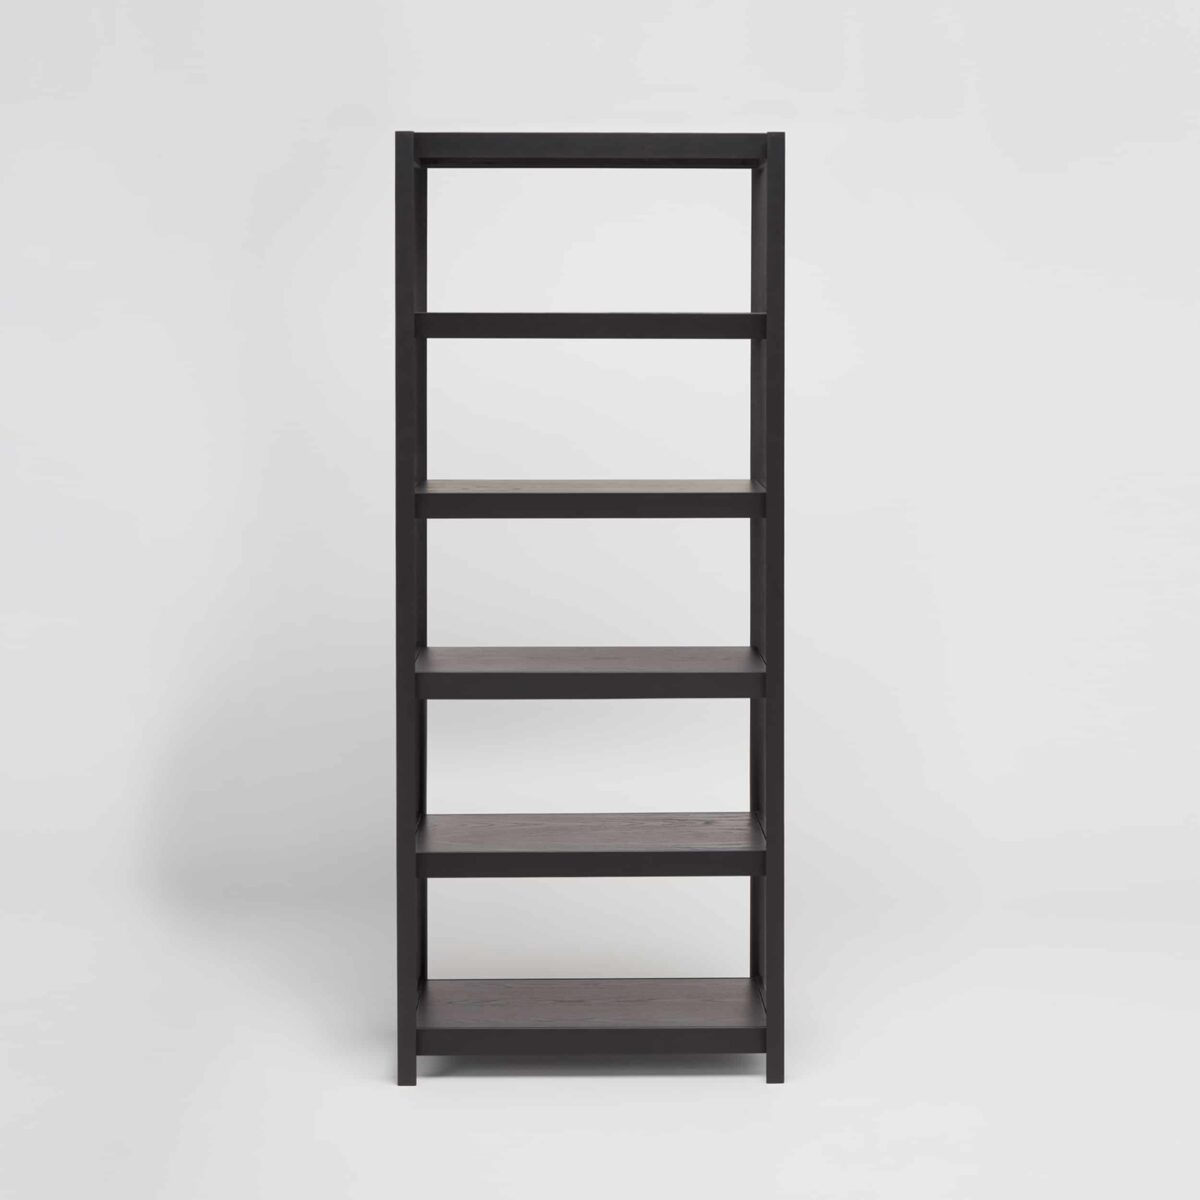 Fram Tall Black Shelving